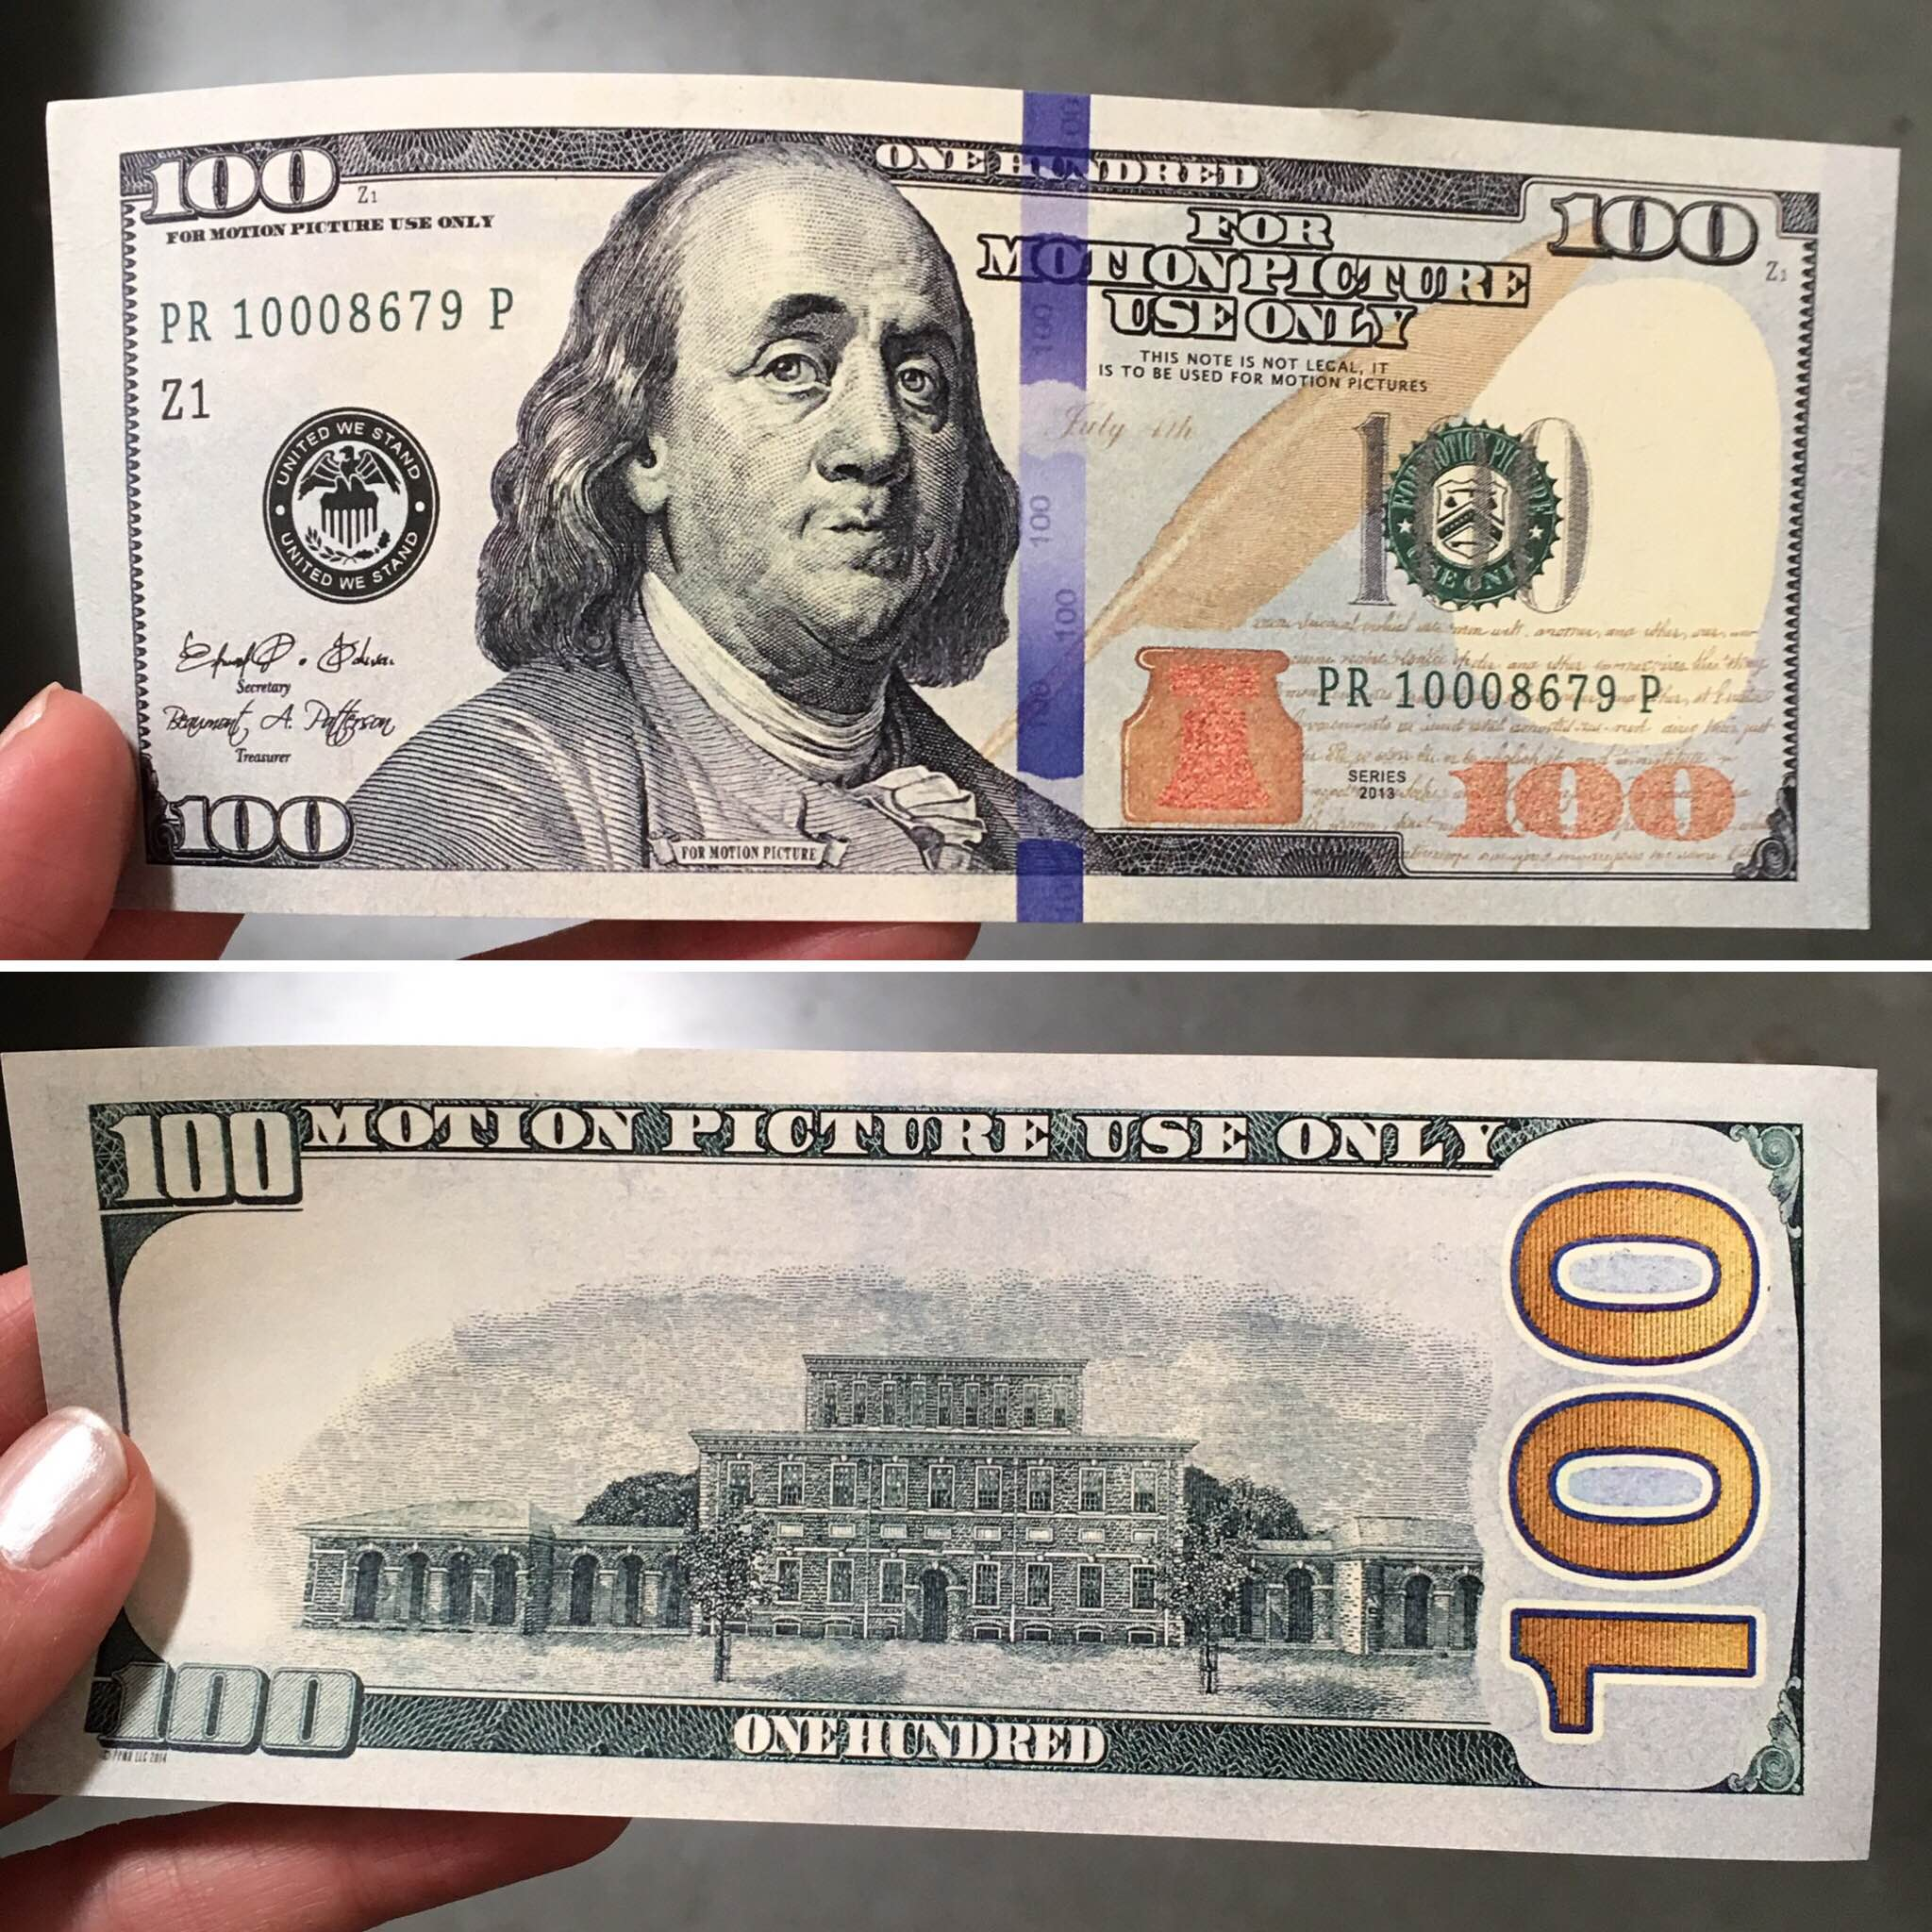 Fake money made for movies have been being used as real money all over the US